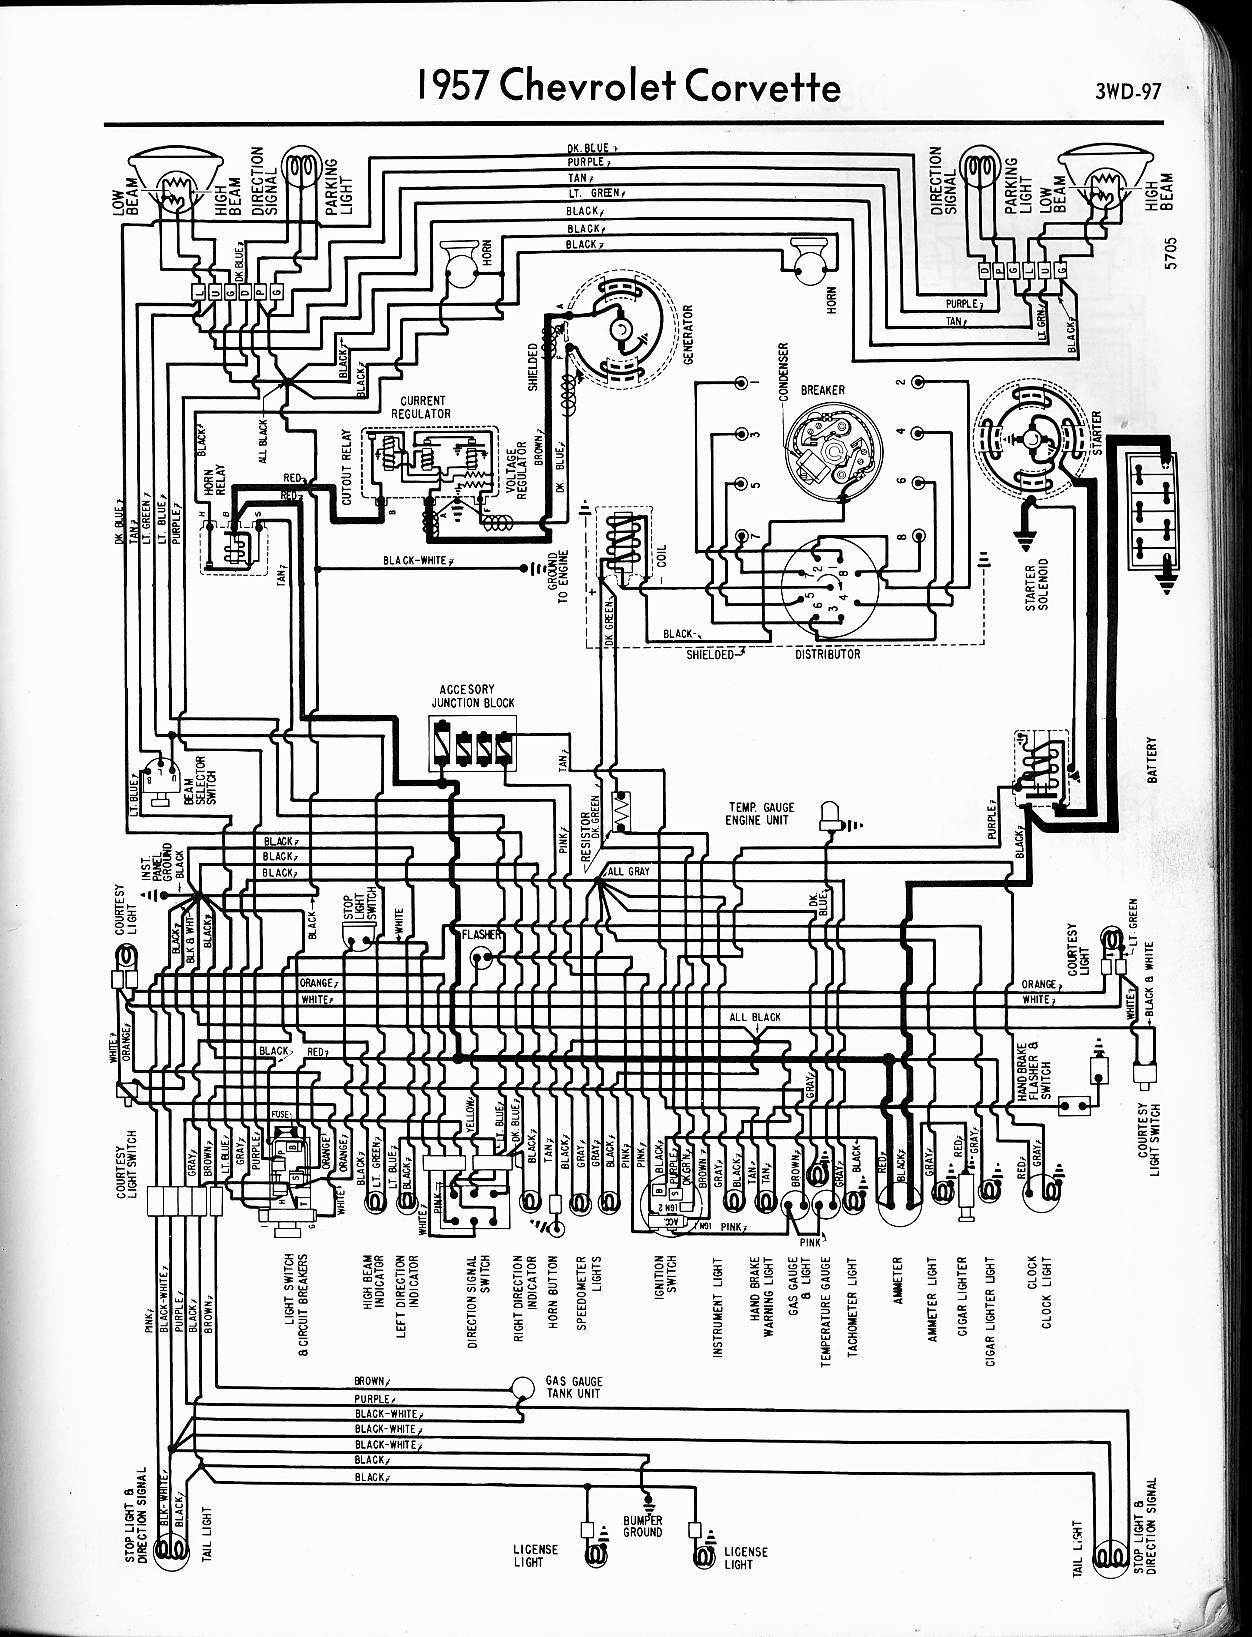 MWireChev57_3WD 097 chevy wiring diagrams chevy radio wiring \u2022 wiring diagrams j 1960 impala wiring diagram at soozxer.org